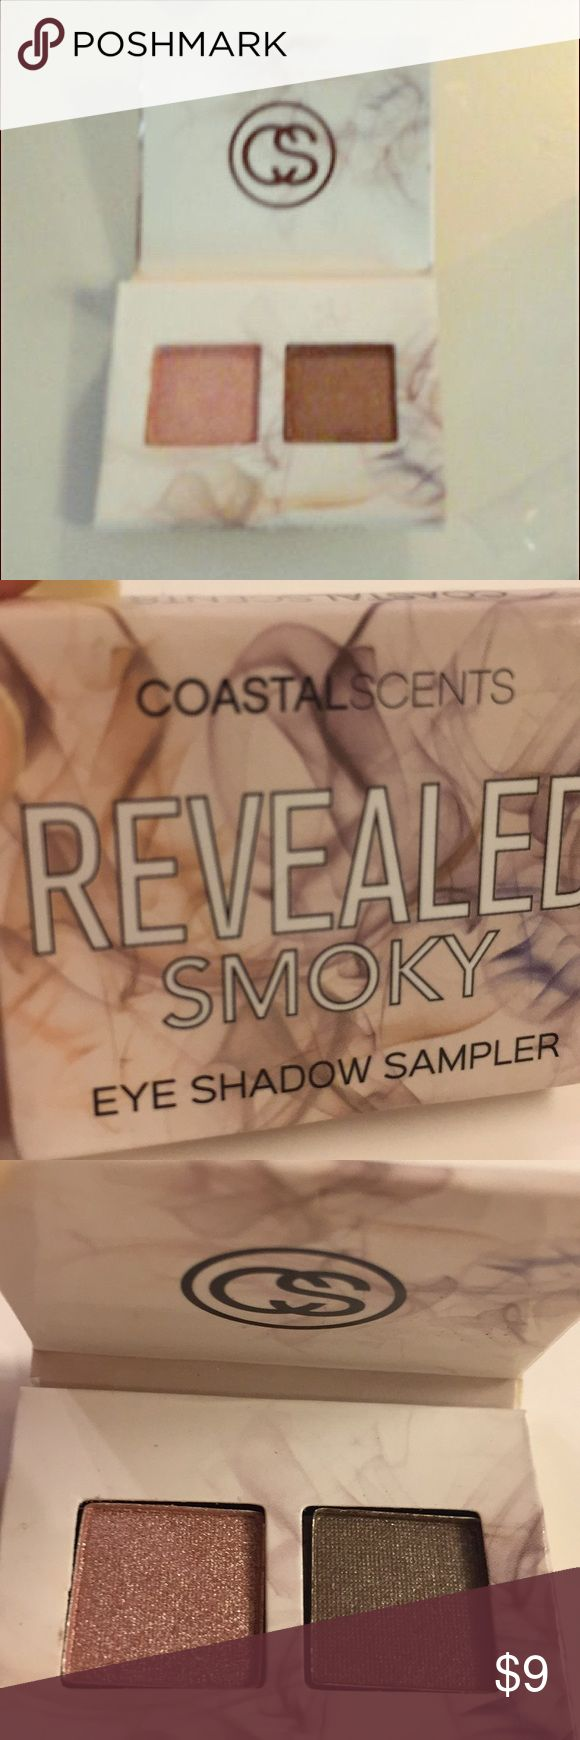 Coastal Scents Revealed Smoky ShadowSample Size Coastal Scents Revealed Smoky Eye Shadow in Sample Size. Coastal scents, Colors are Smoky eye and Holy grail. Looks great on. Make an offer or Bundle discount Coastal Scents Makeup Eyeshadow